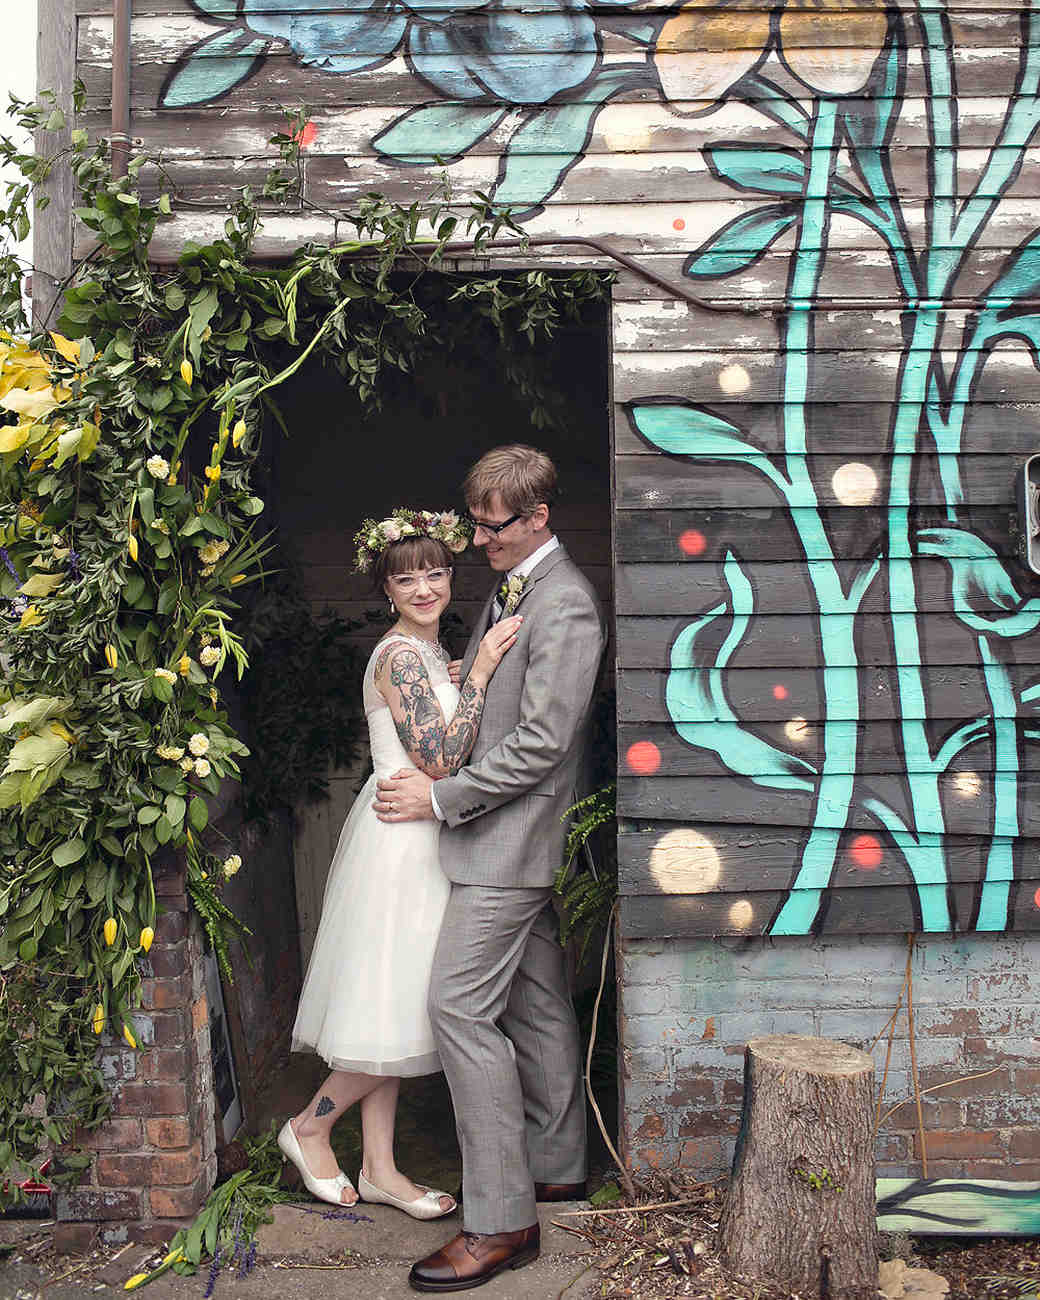 kristen-steve-flowerhouse-wedding-couple-6170-s113059-0616.jpg